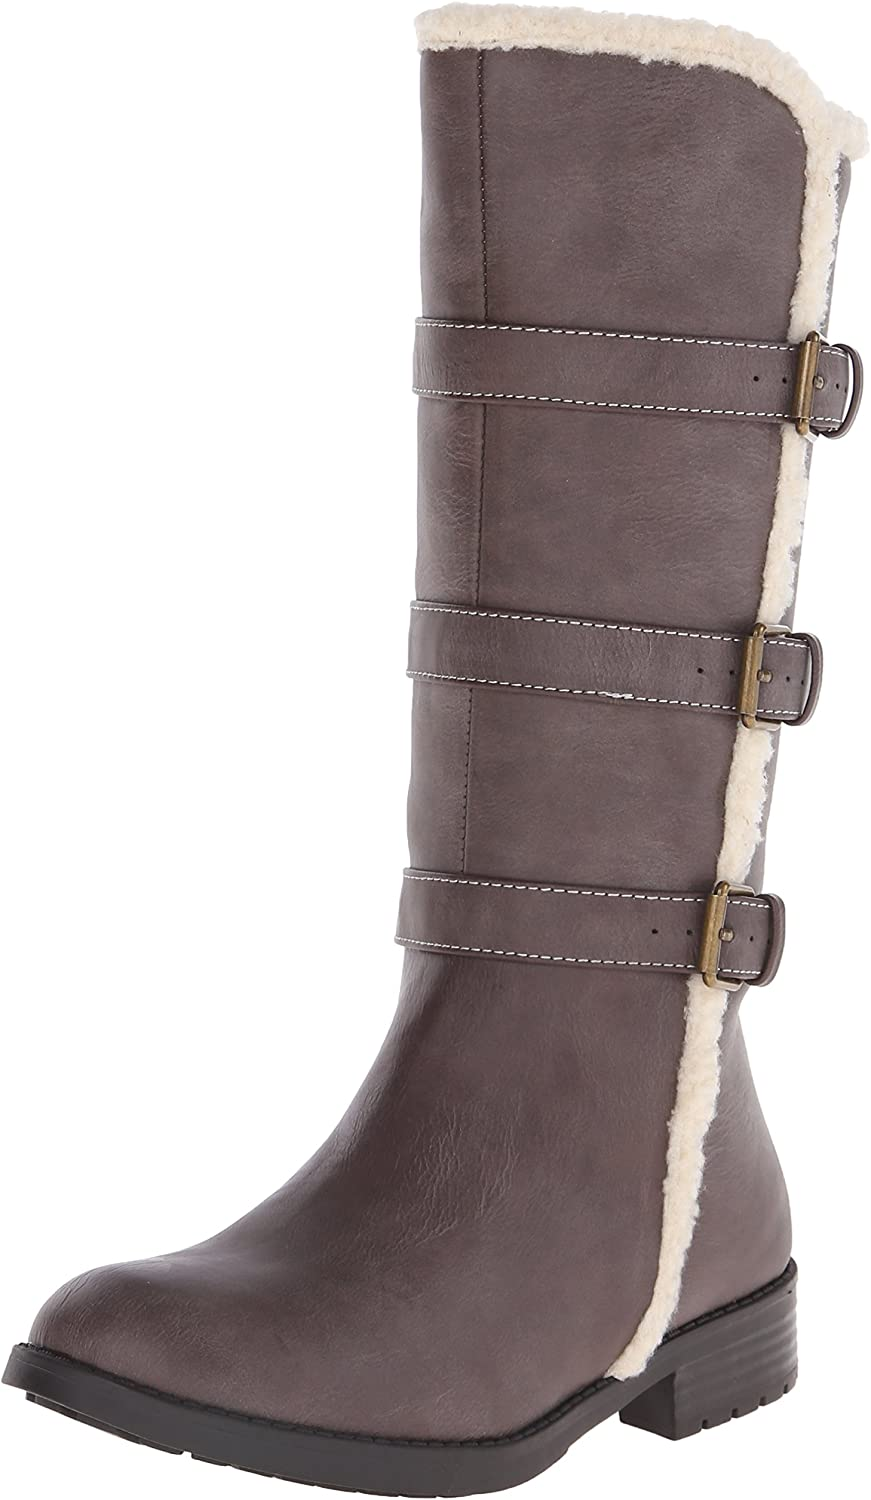 Kenneth Cole REACTION Elegant BA Faux-Shearling Outlet sale feature Big Boot Kid Little